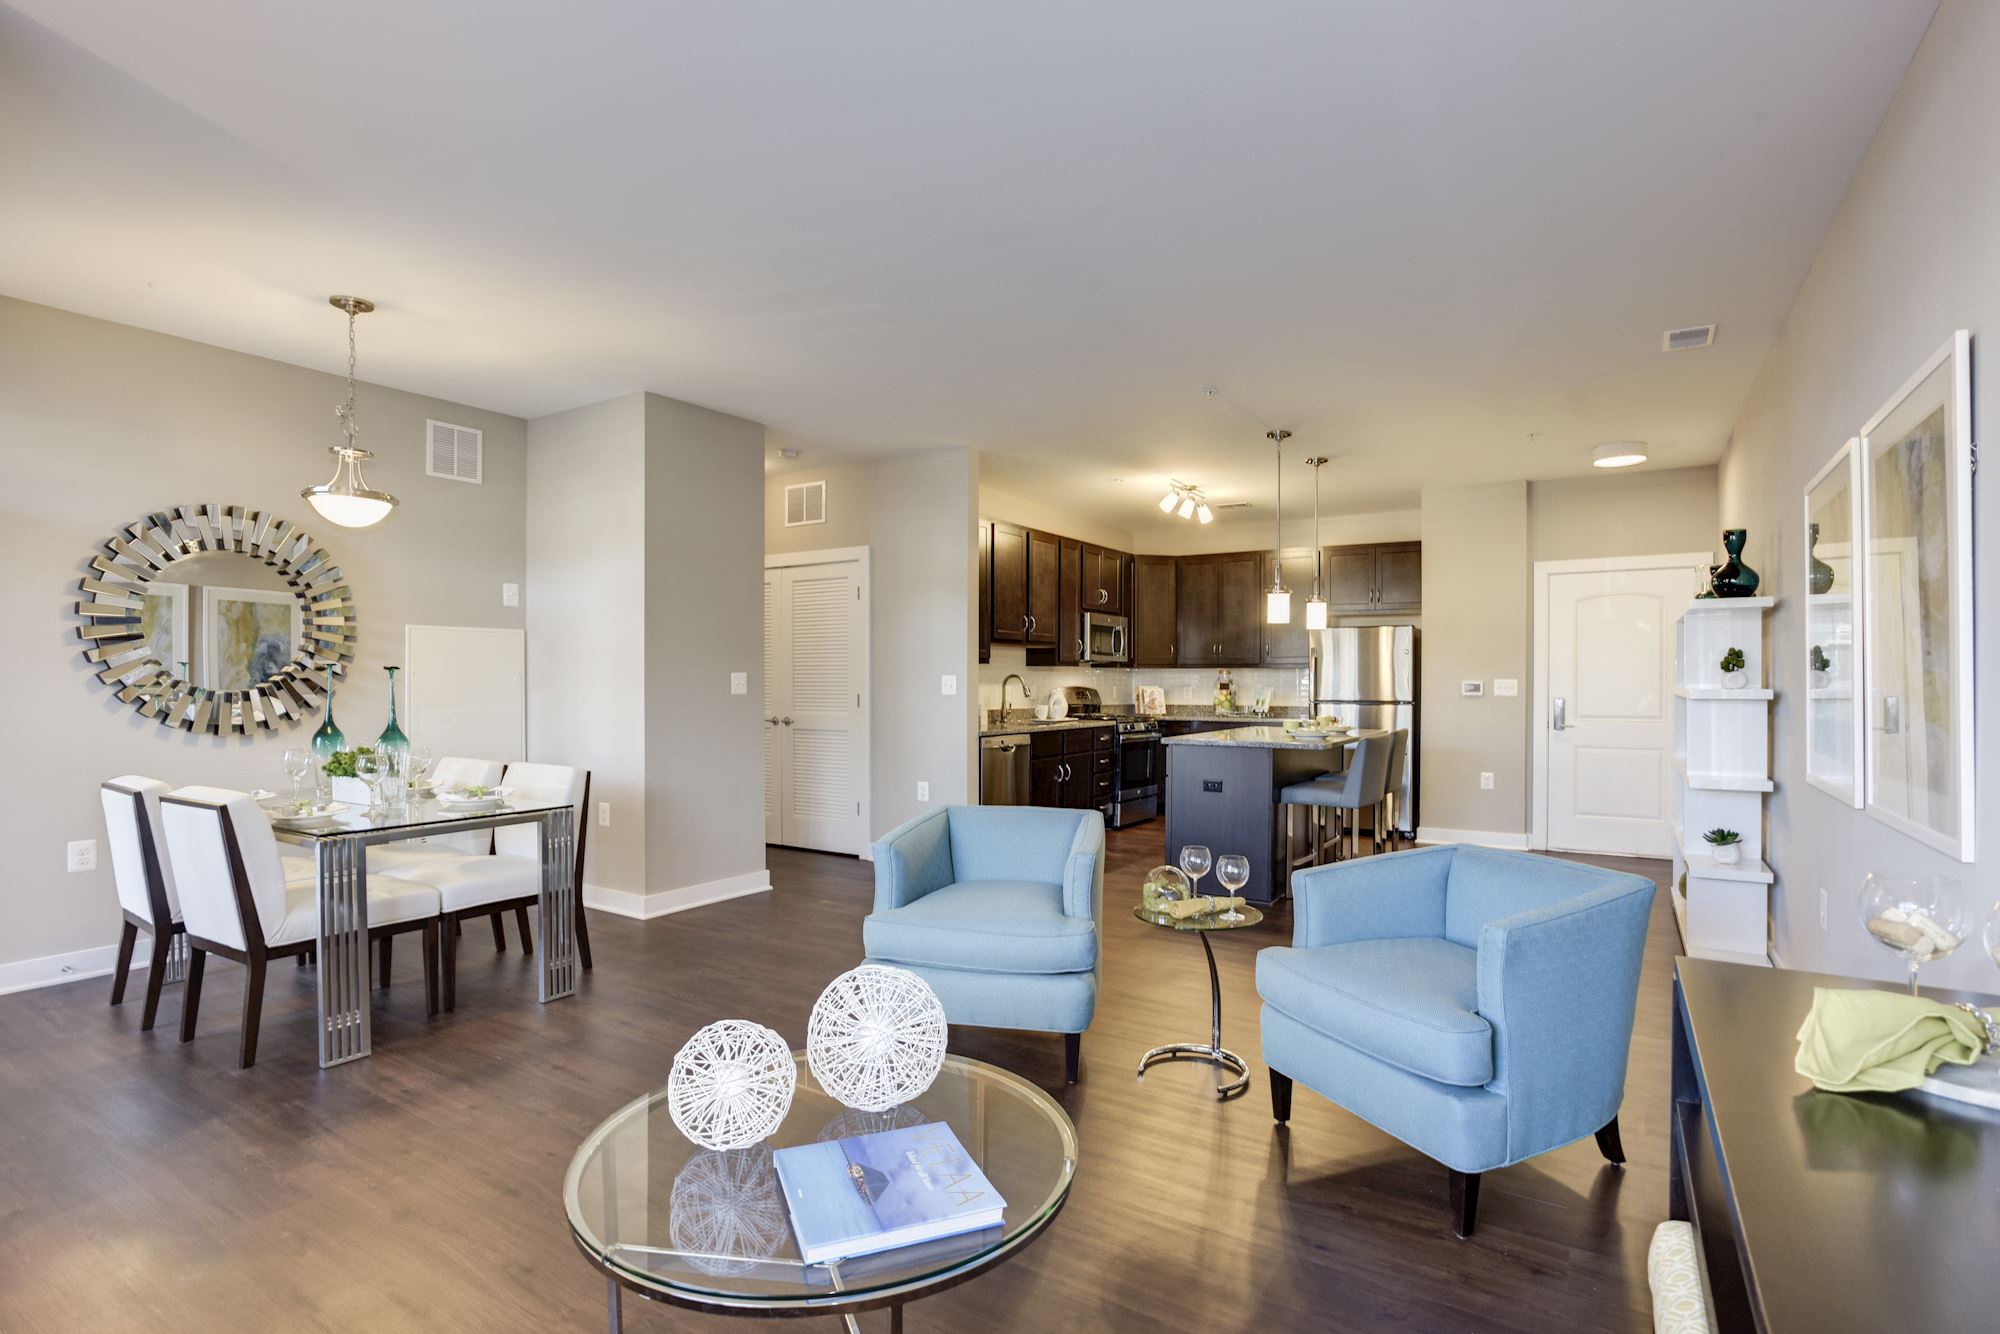 Avanti Luxury Apartments in Bel Air, MD - Living Area 3